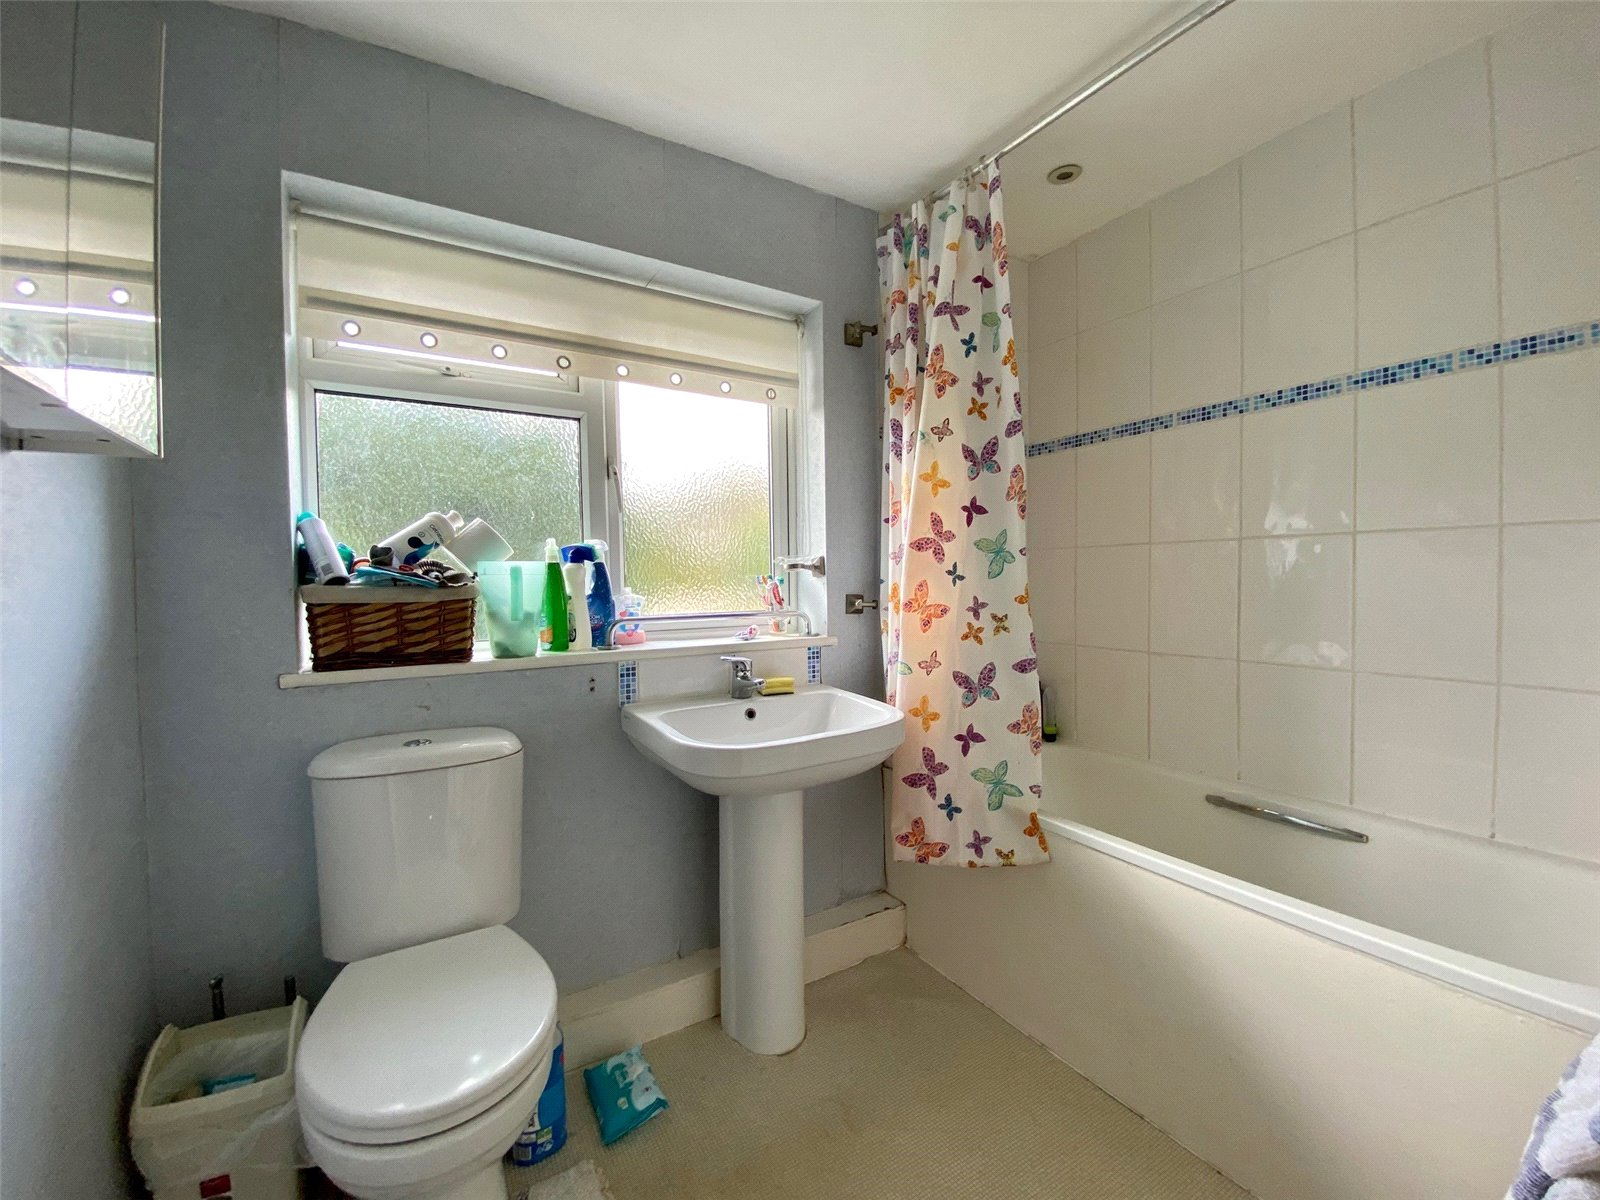 3 bed house to rent in Bricket Wood, AL2 3NB  - Property Image 4